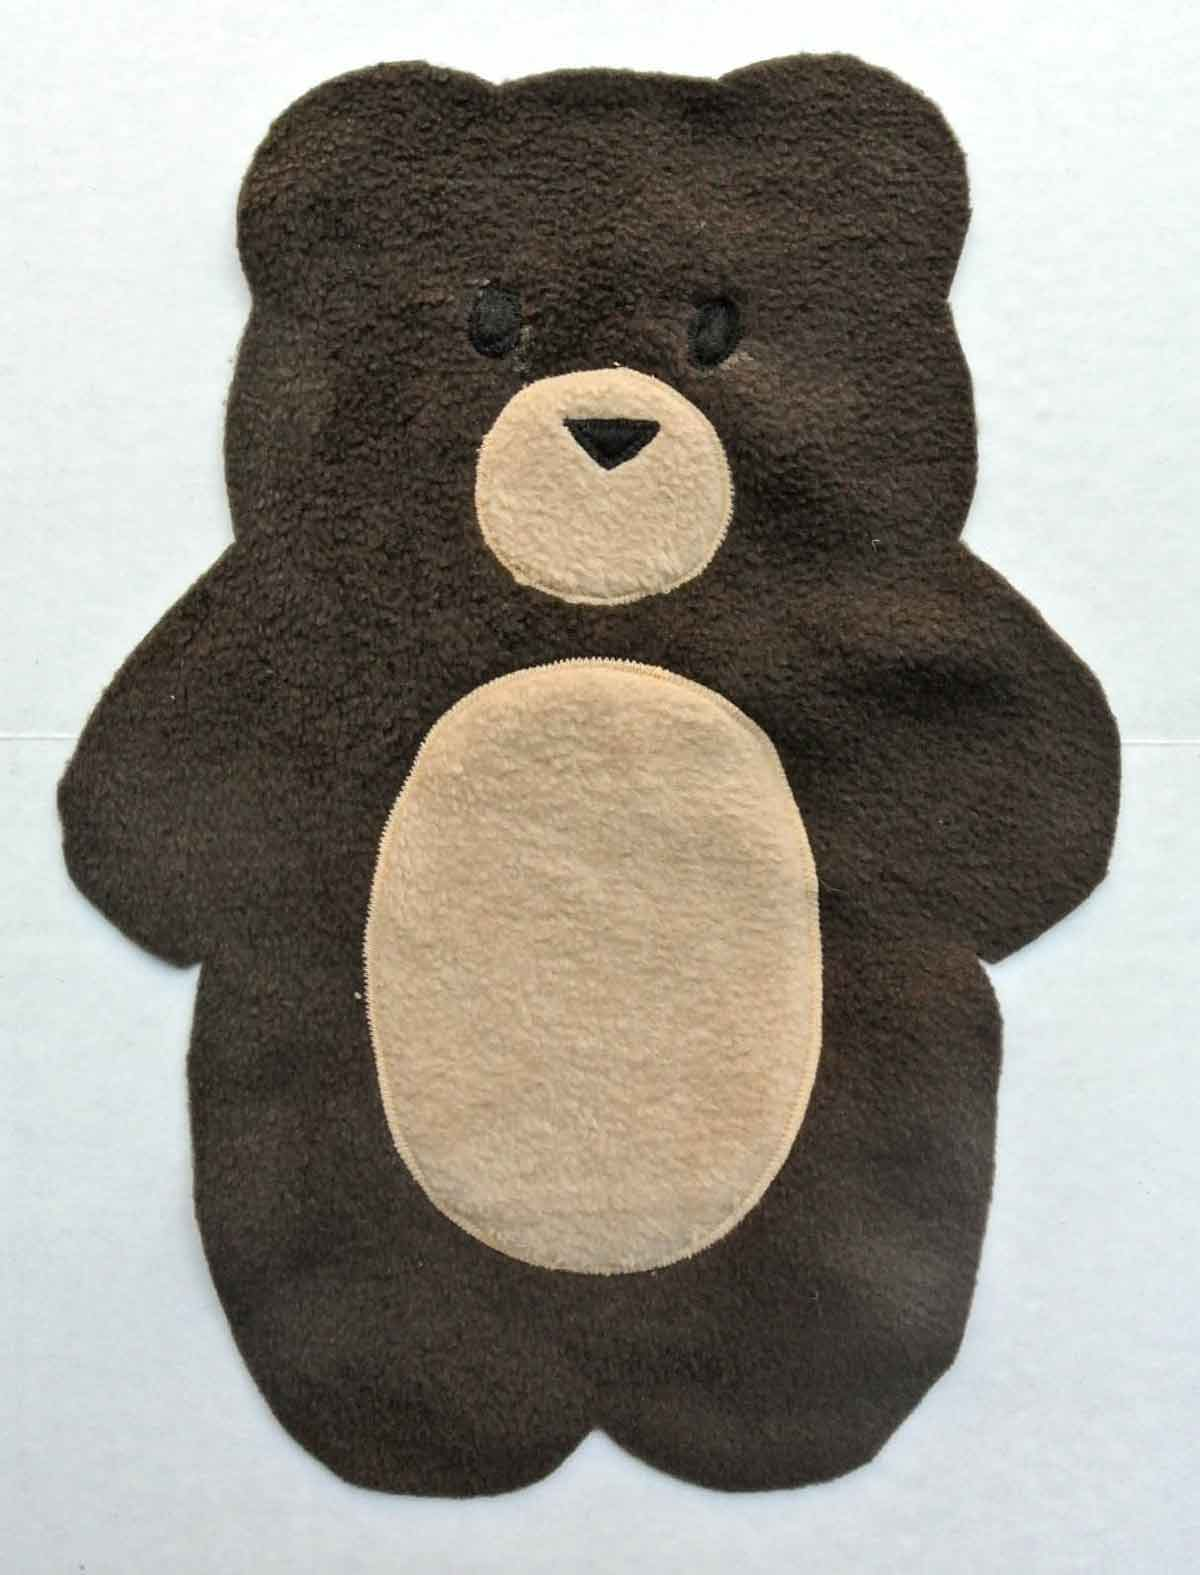 Bear plush front fabric with accessory details appliqued on. How to Make Plushie Tutorial